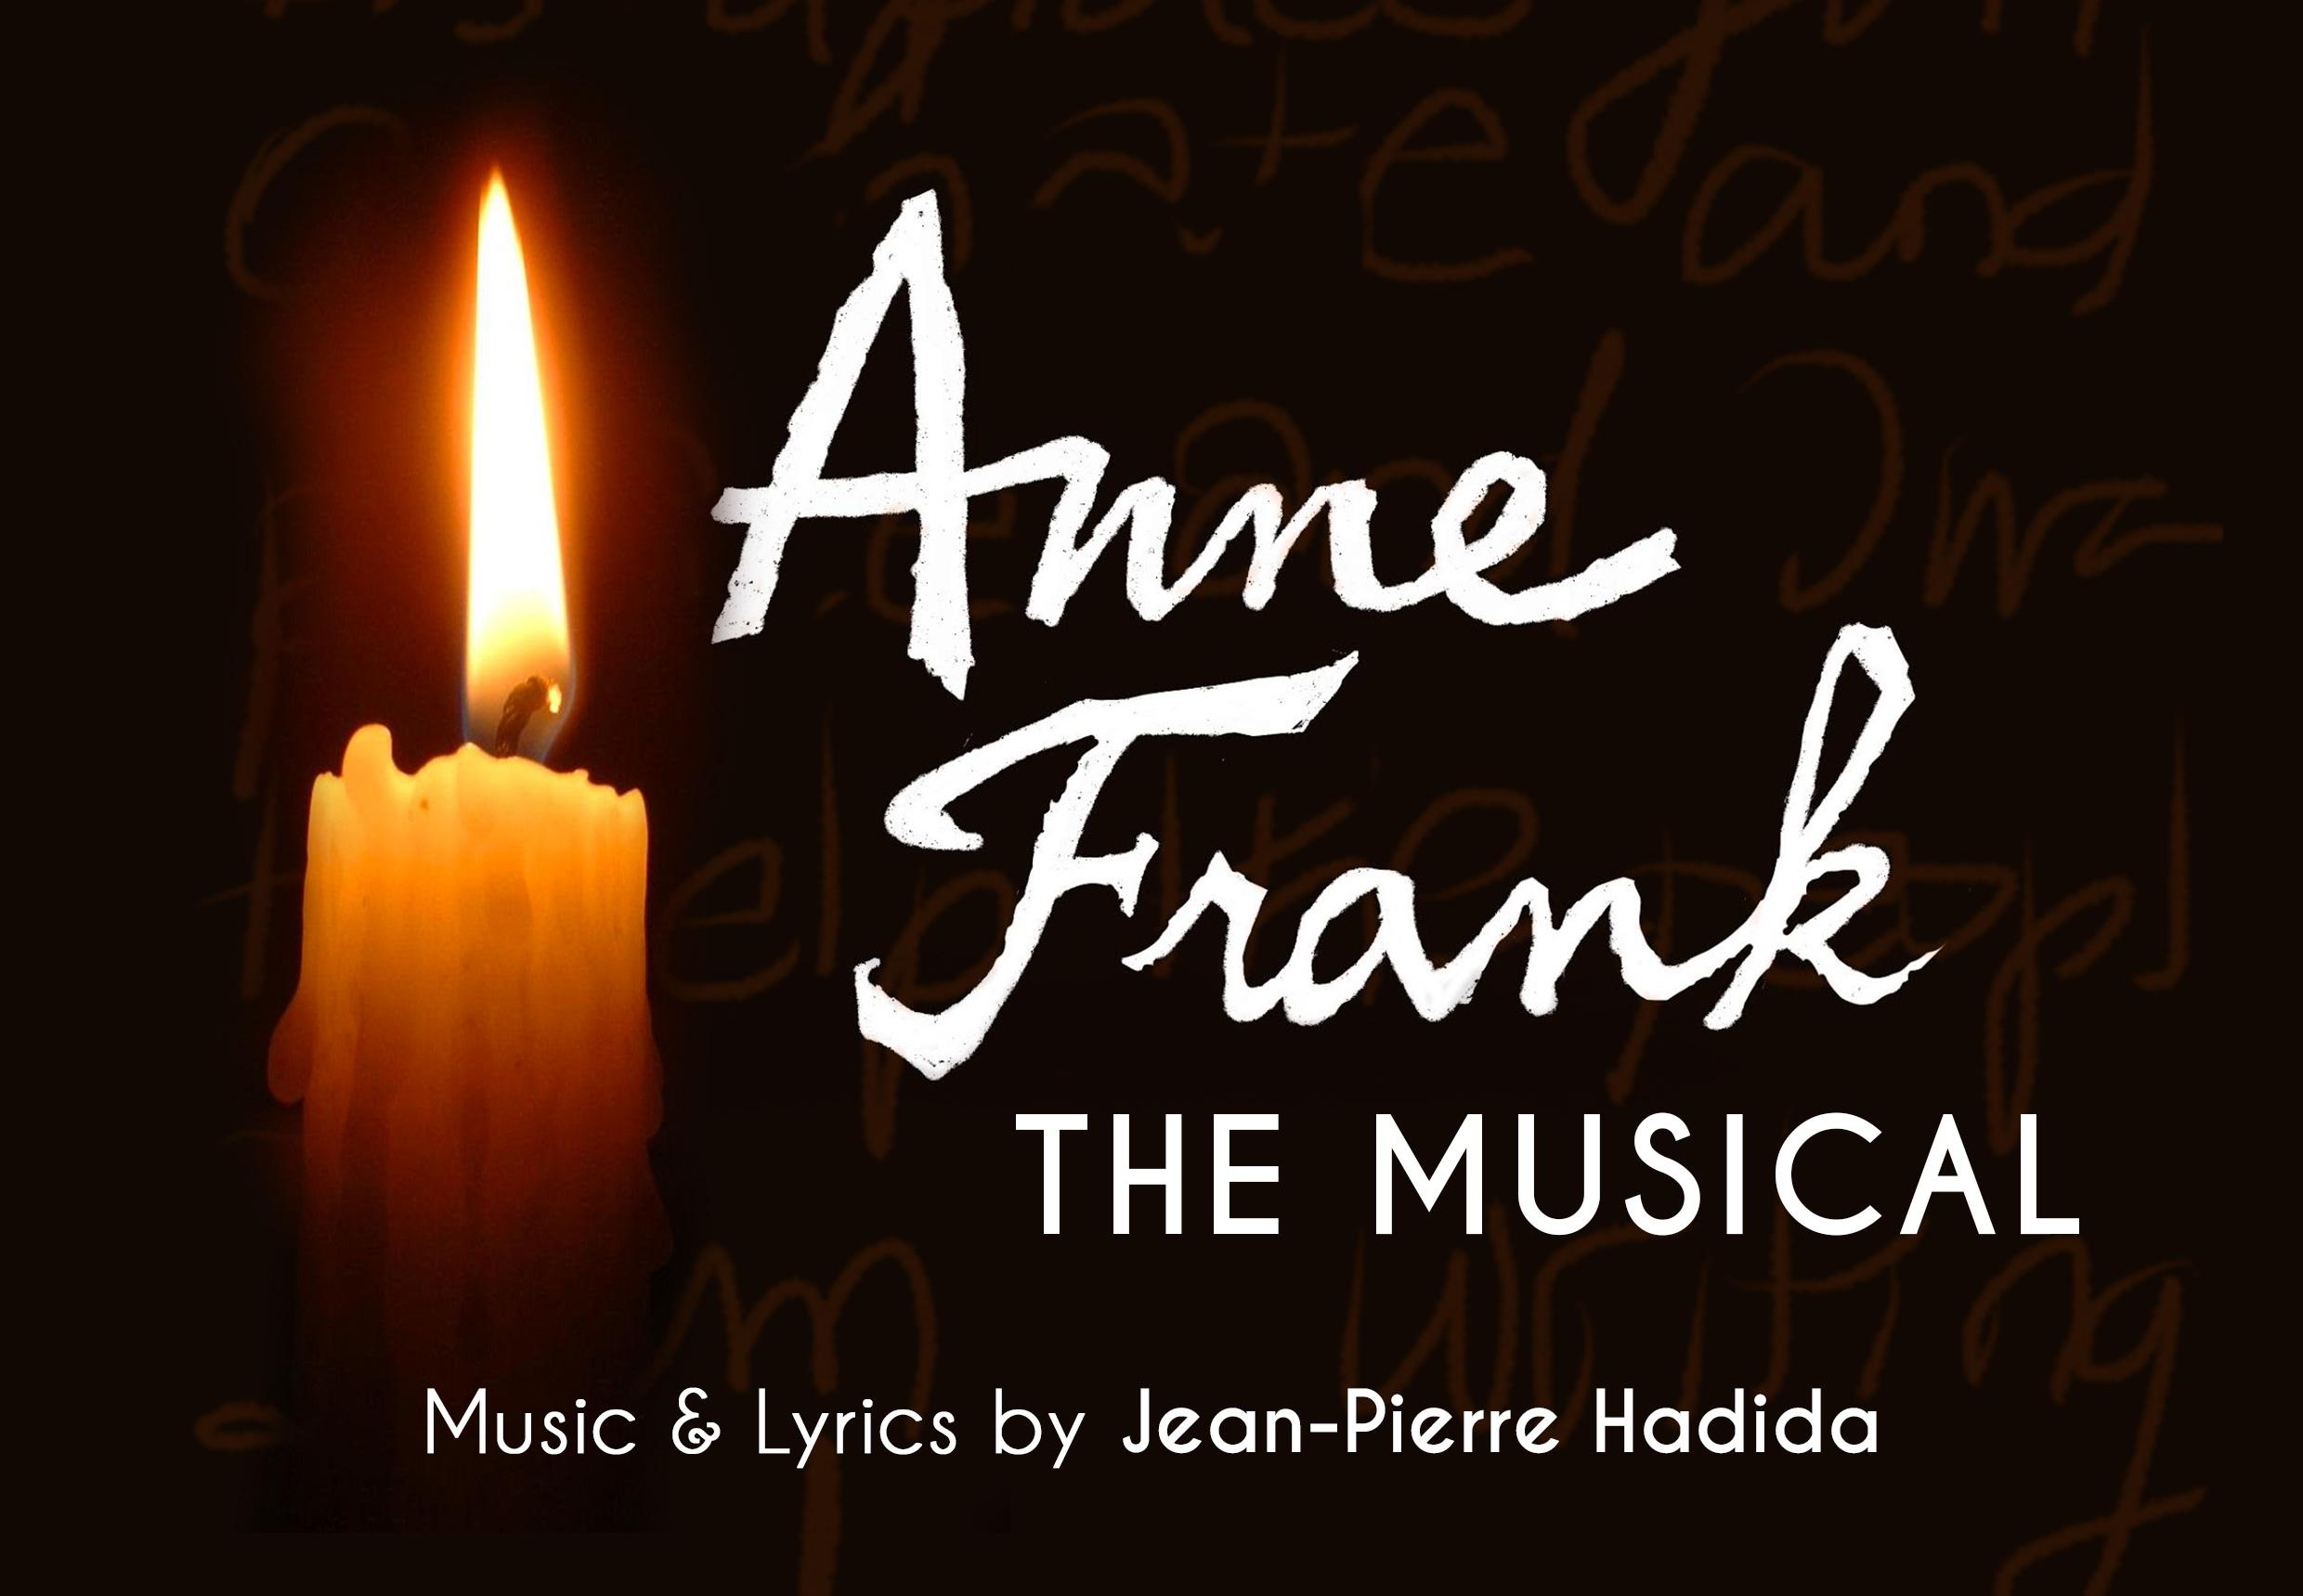 Off-Broadway: Anne Frank, a musical (Based on the life of Anne Frank)